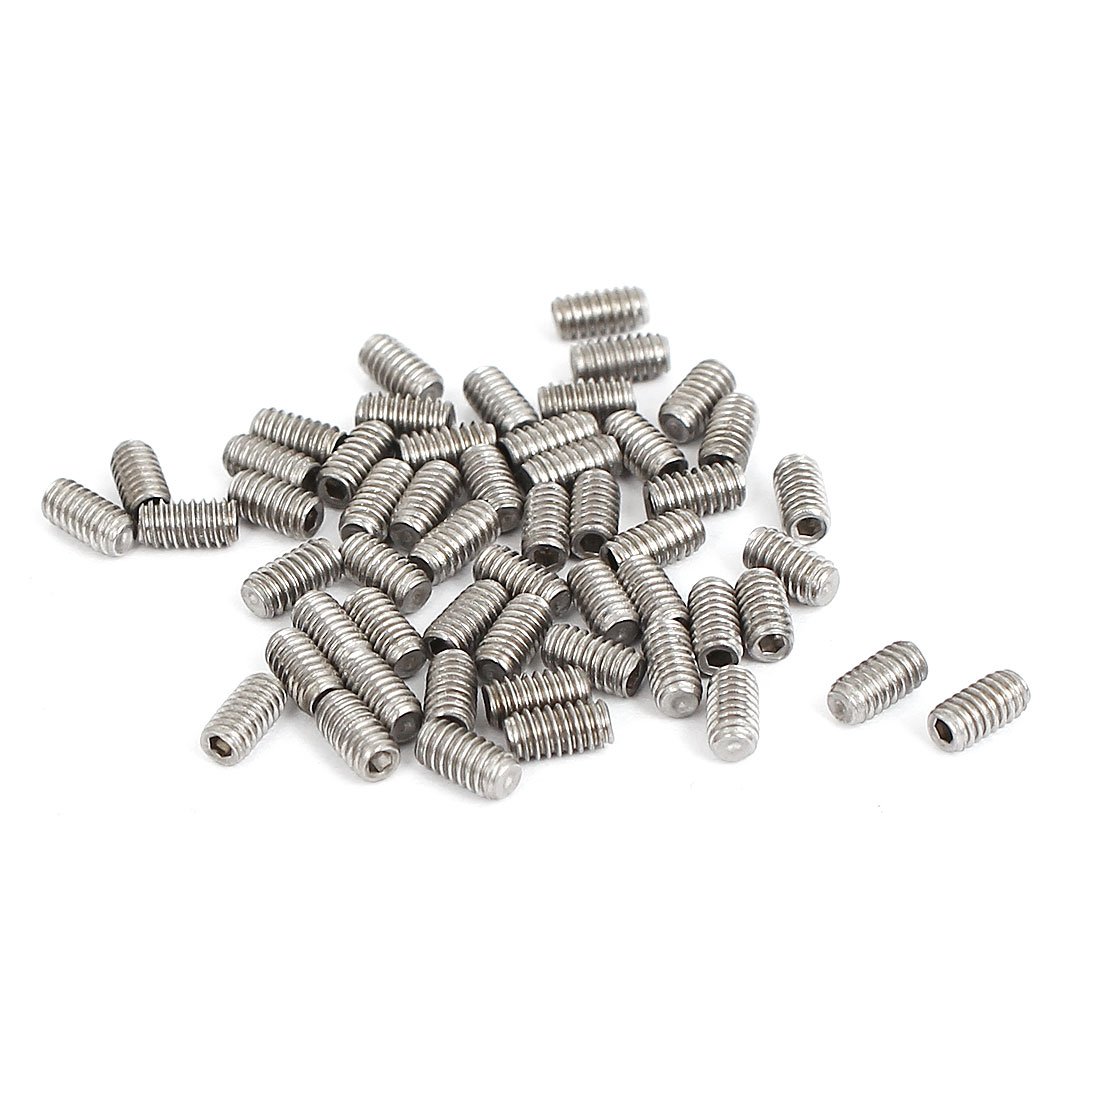 M2x4mm Stainless Steel Hex Socket Set Cap Point Grub Screws Silver Tone 50pcs